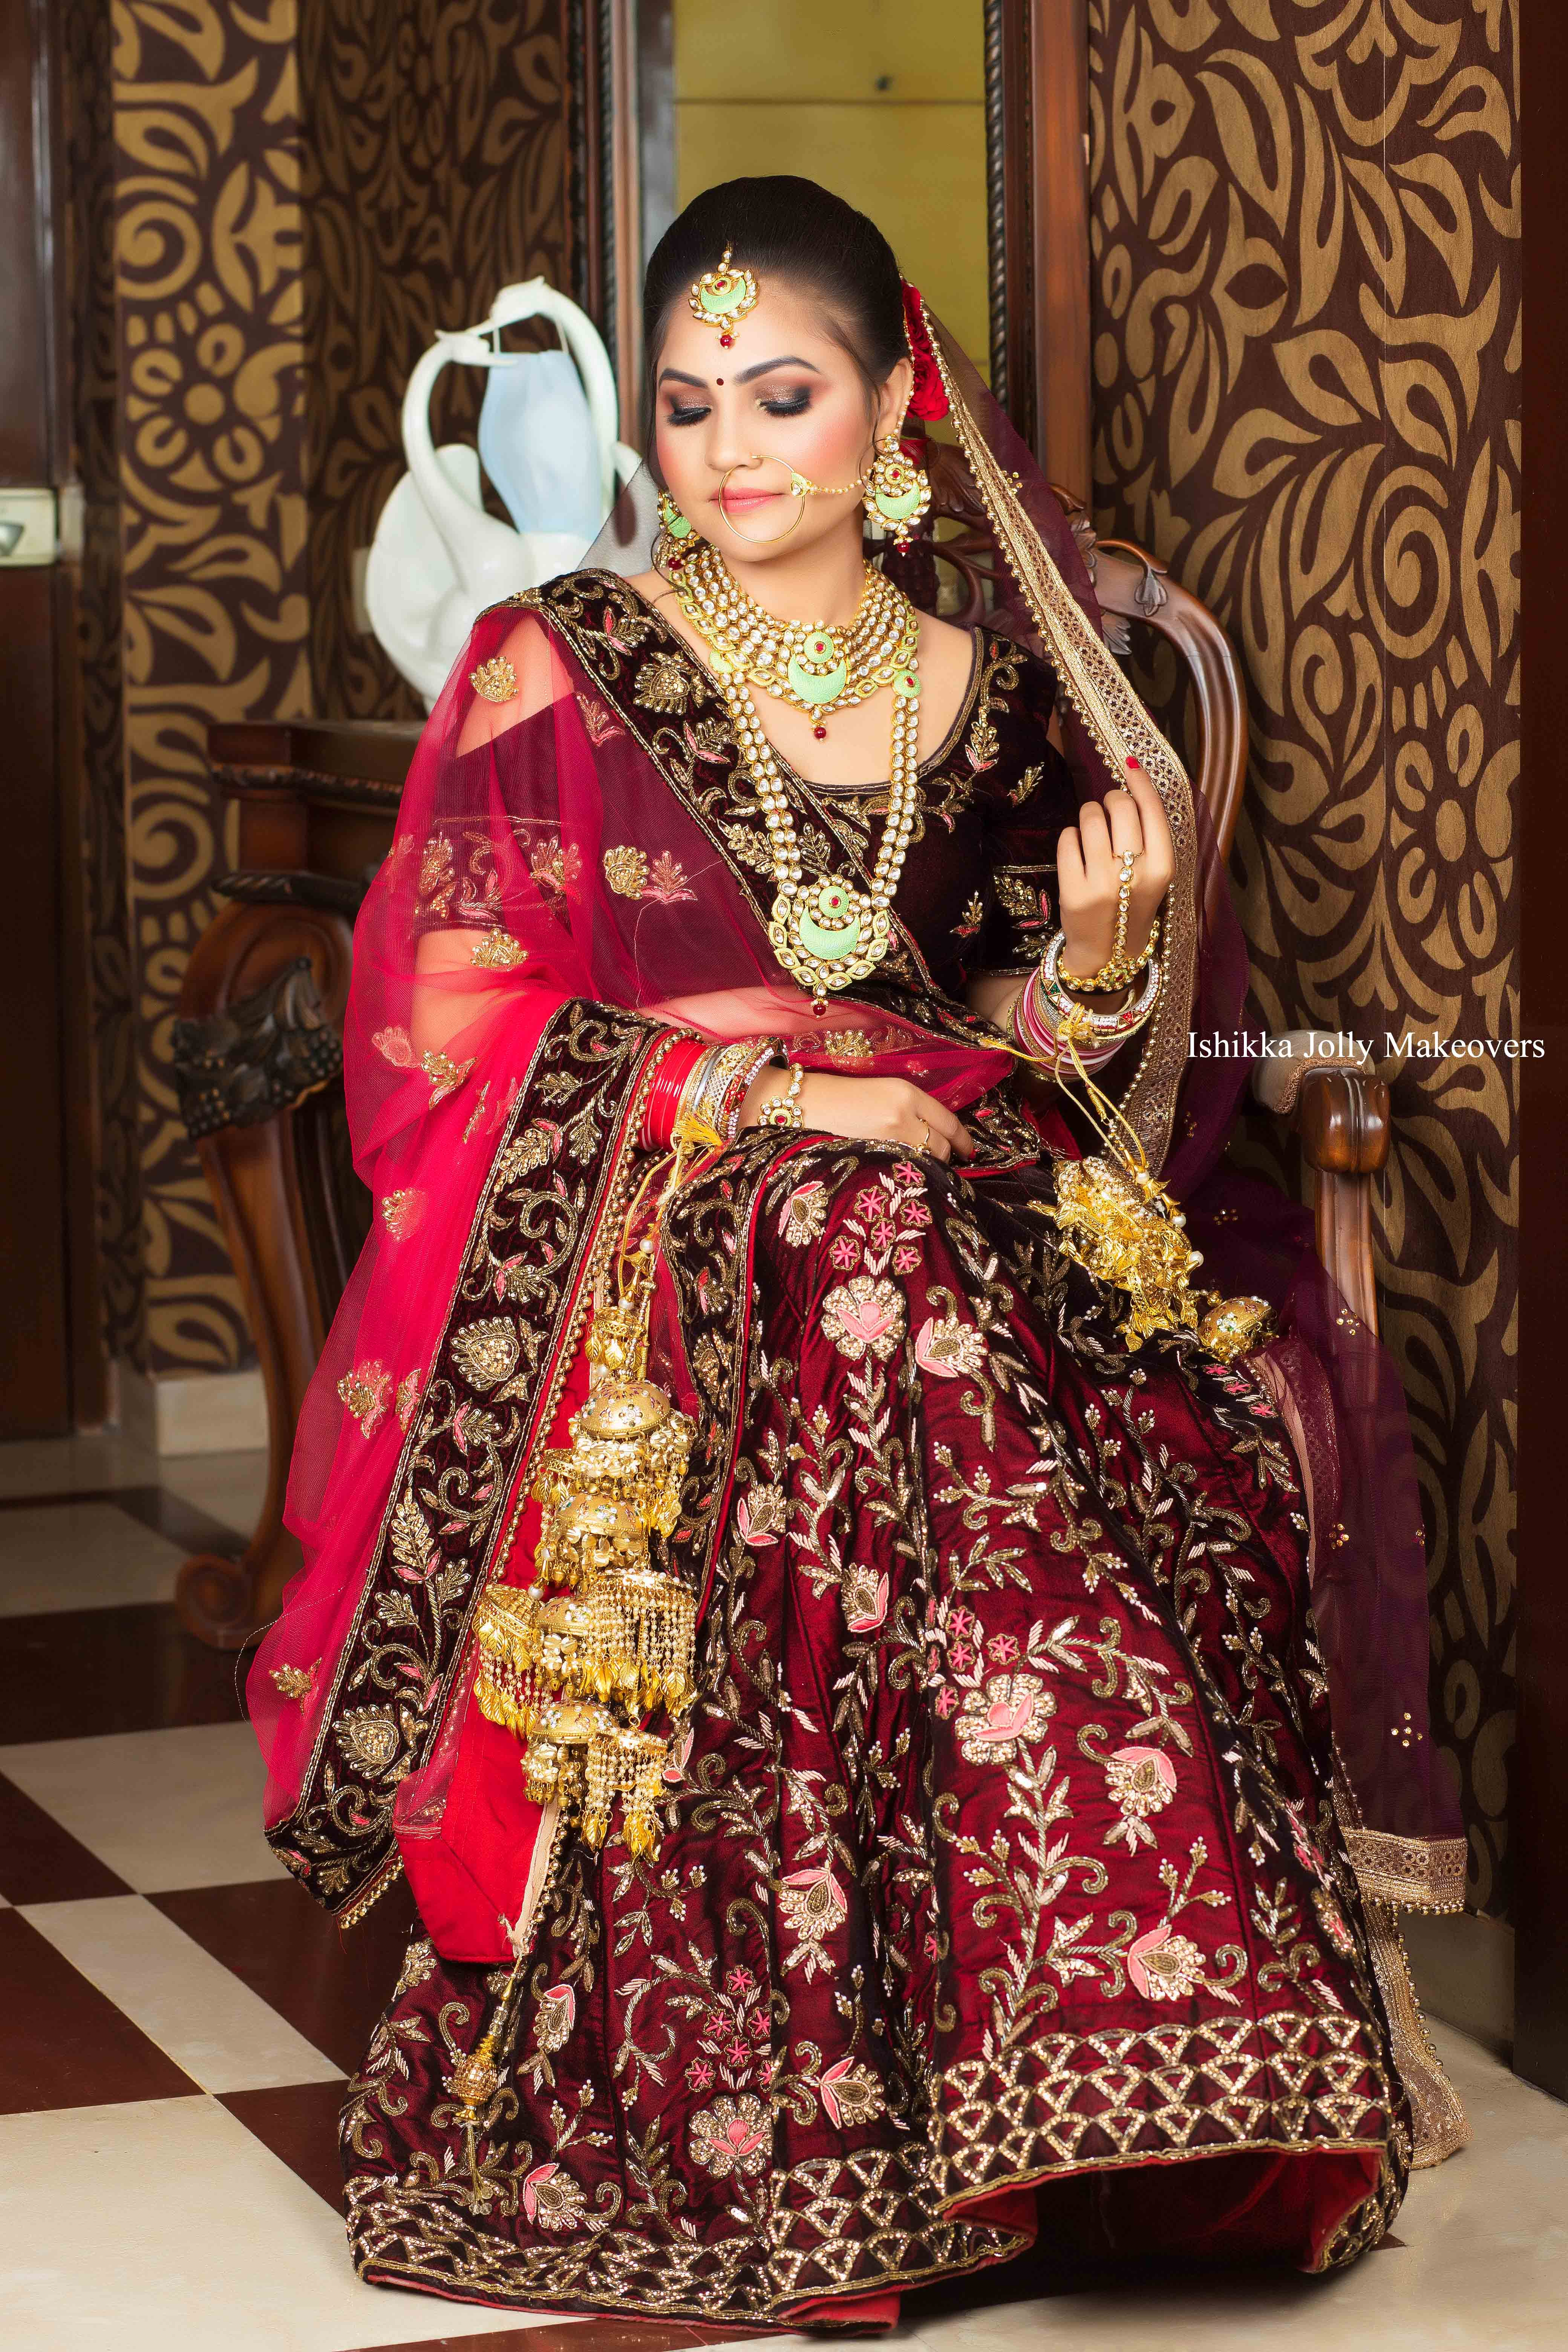 Preserve your special pictures by hiring Bridal Makeup Artist in Gurgaon